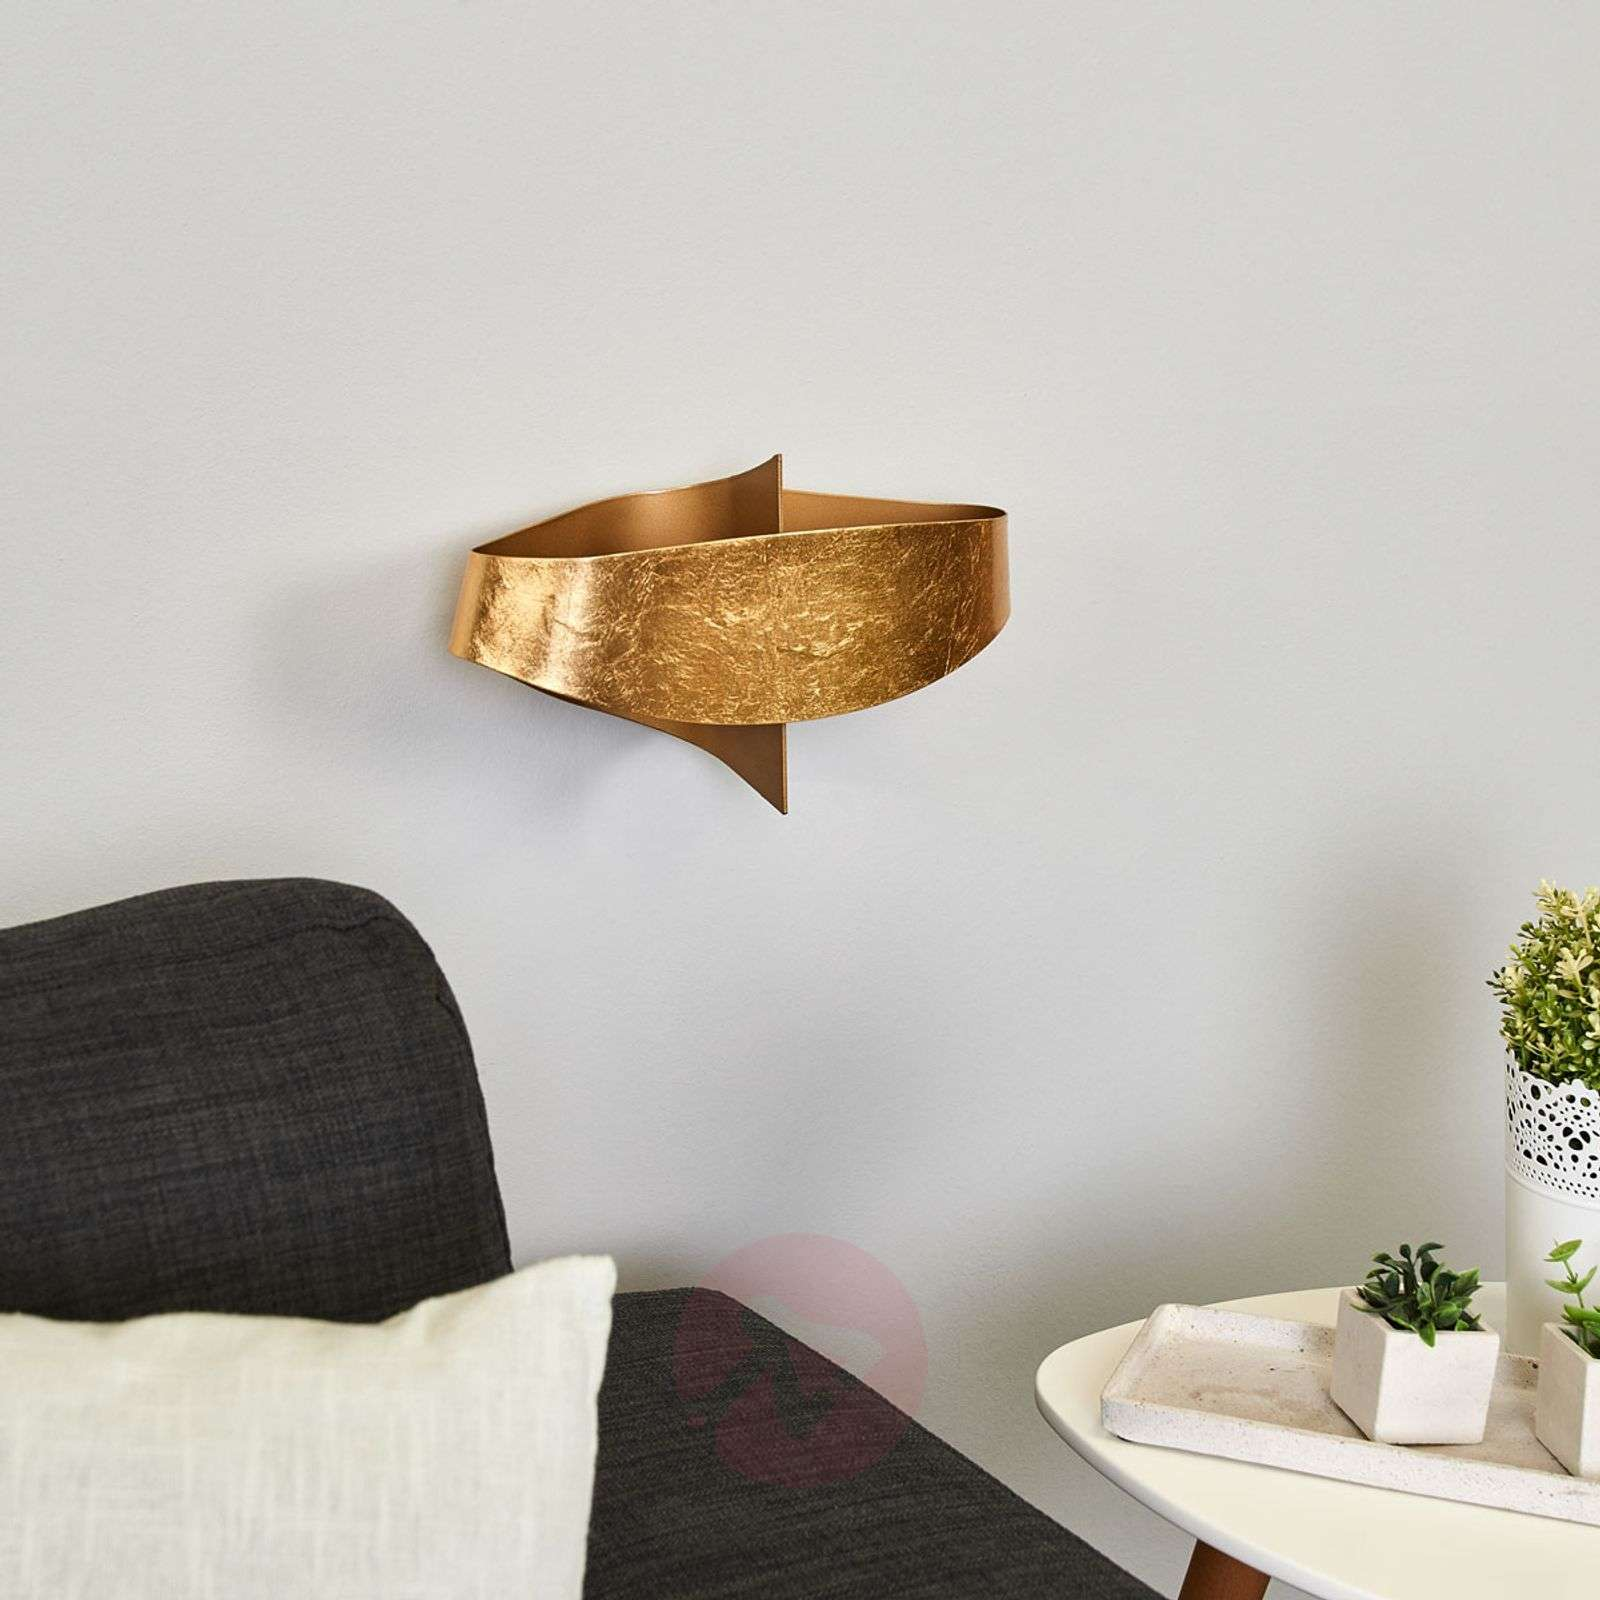 Magical wall lamp Mariano in gold-9625127-01